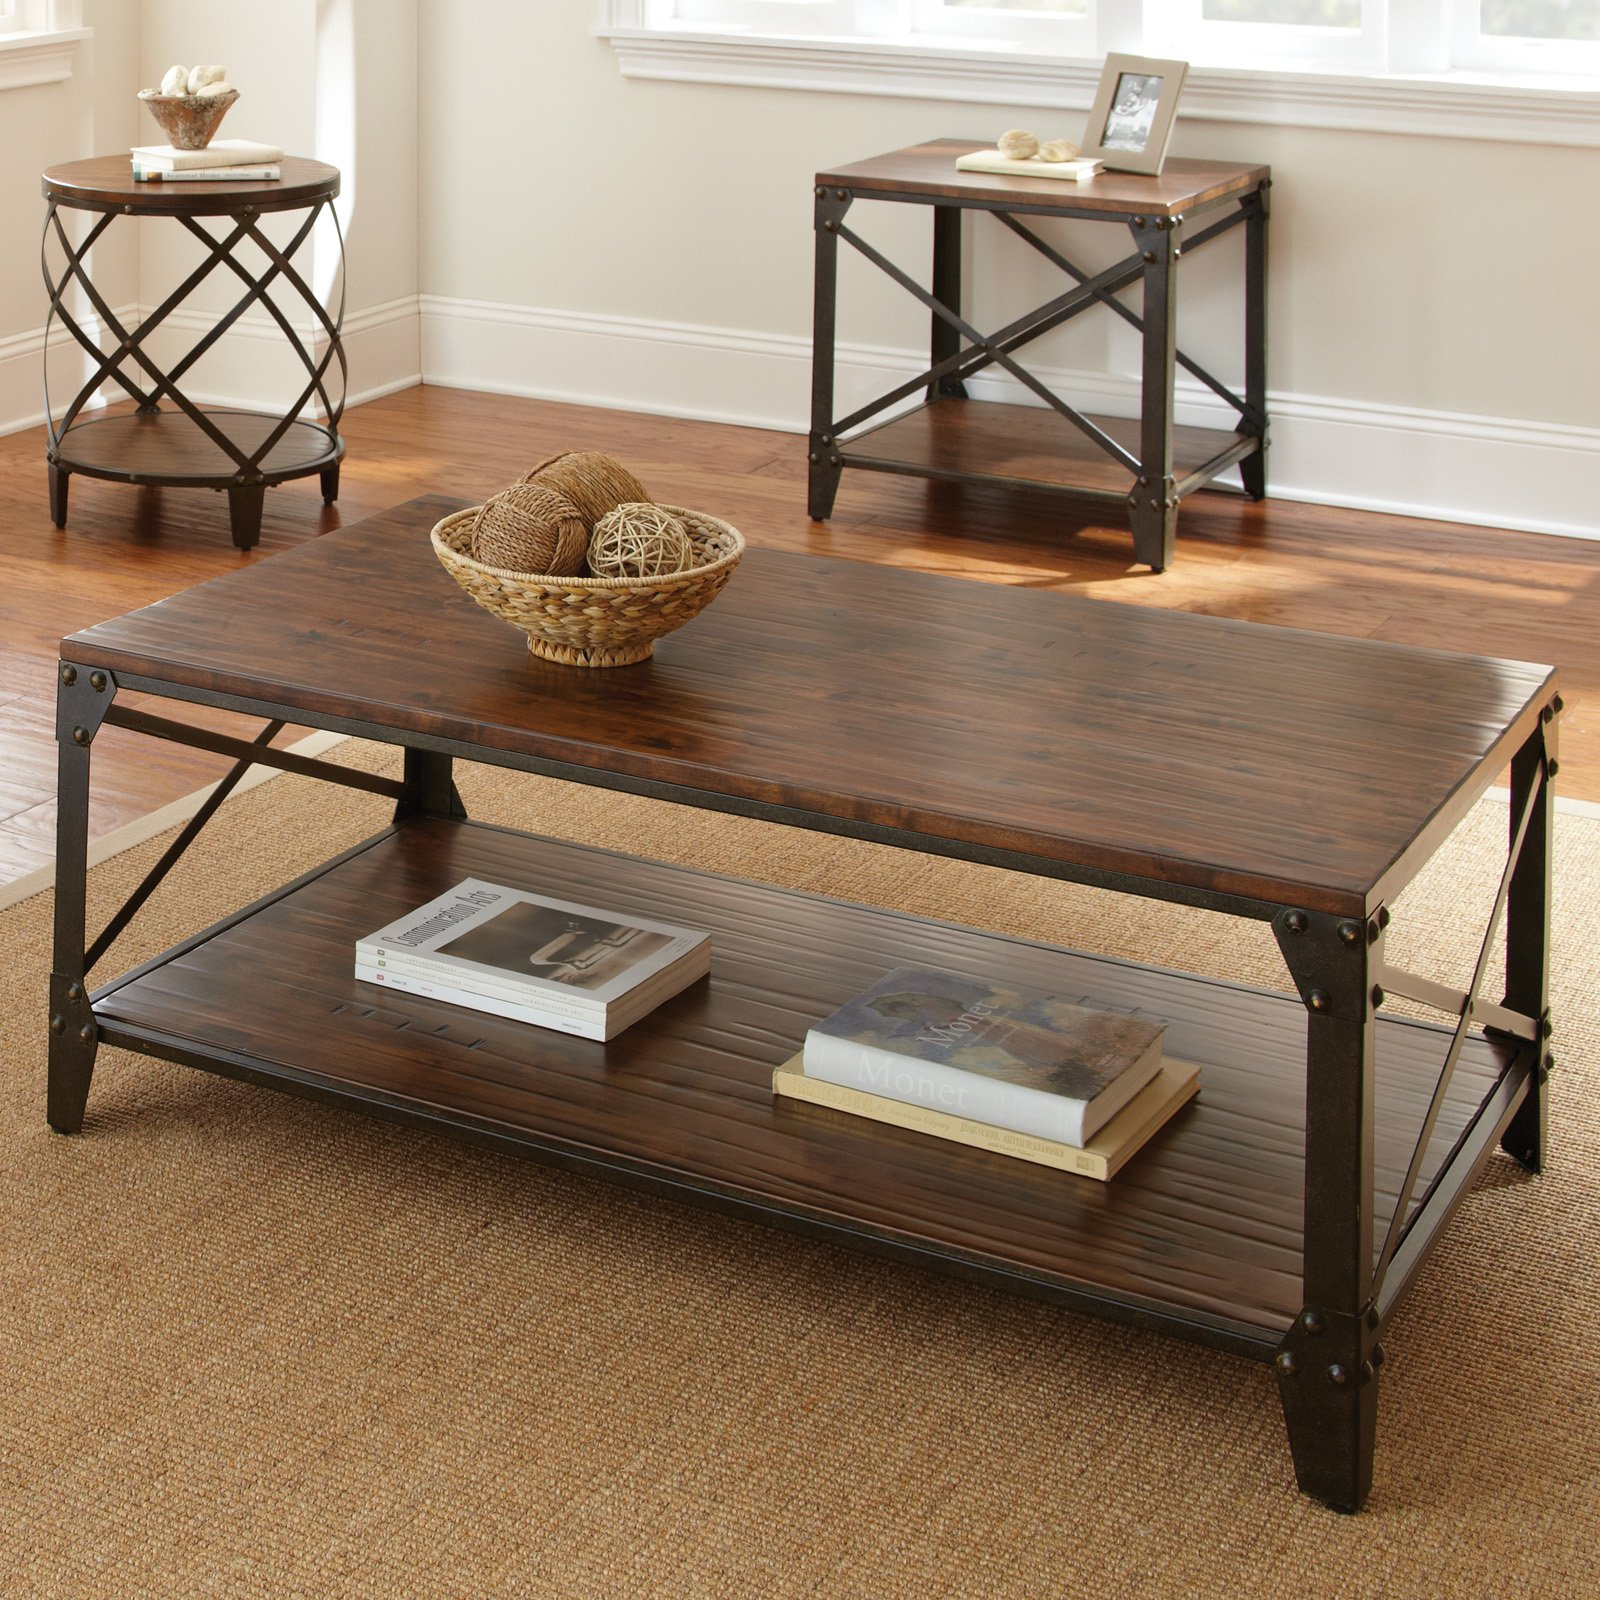 steve silver winston rectangle distressed tobacco wood and metal coffee table end tables small family room furniture arrangement powell console black white nest oak legs